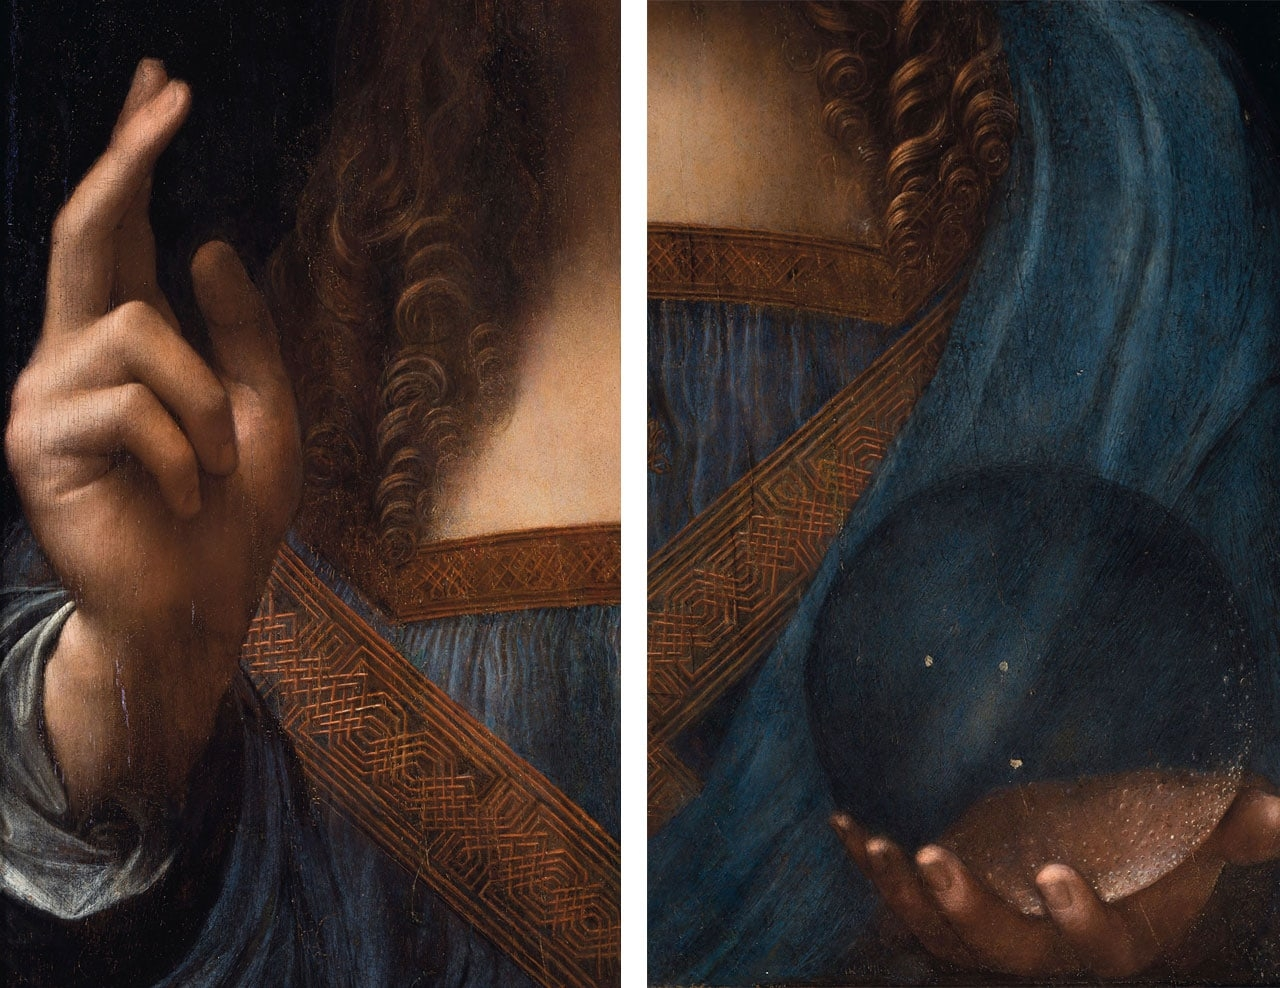 On the left Leonardo da Vinci, Salvator Mundi, detail of right hand and on the right Leonardo da Vinci, Salvator Mundi, detail of left hand holding orb